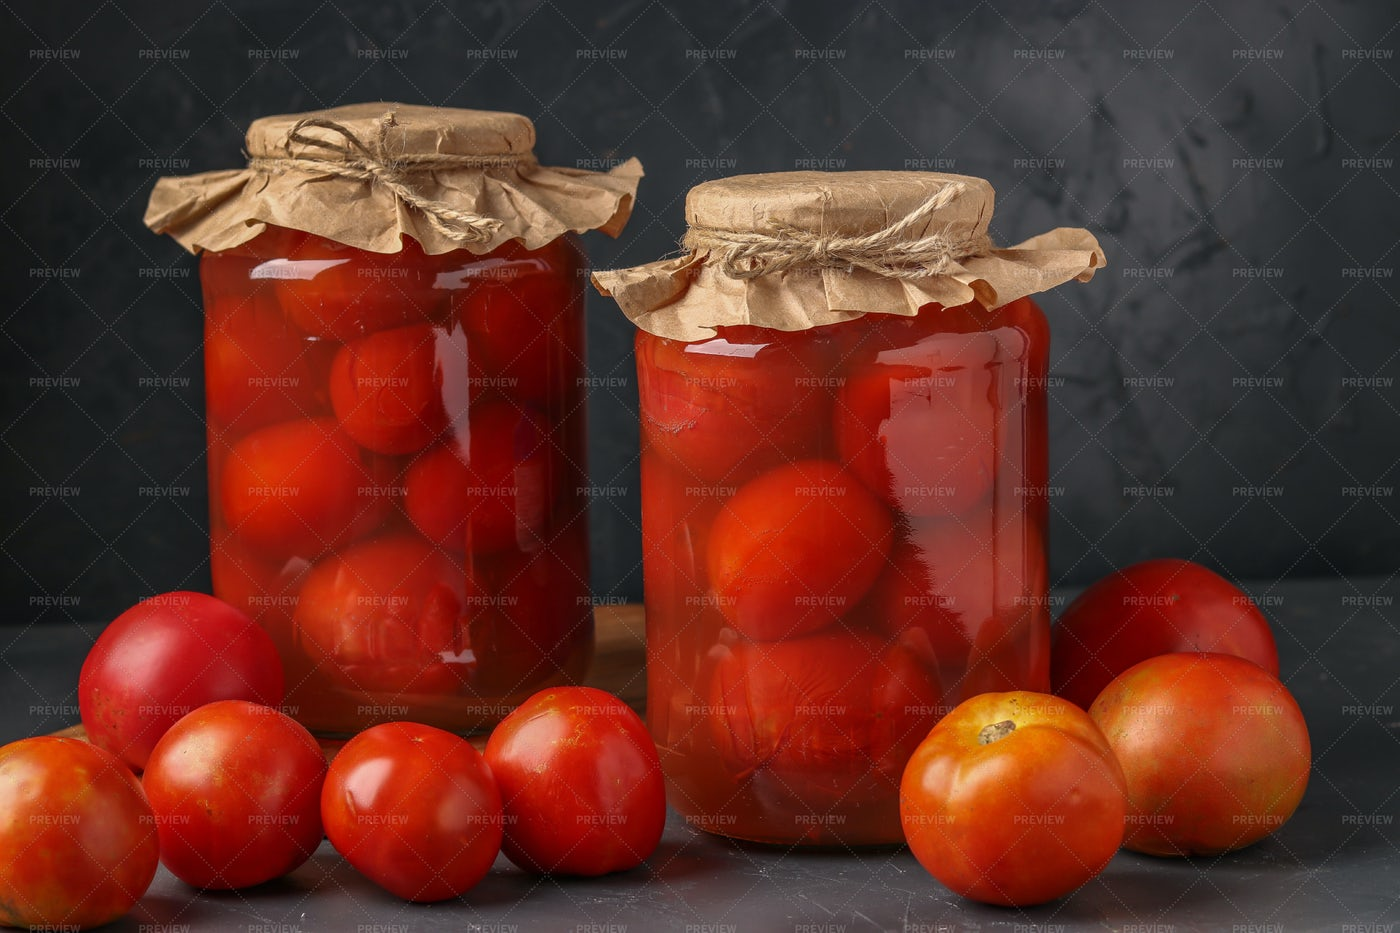 Homemade Salted Tomatoes In Jars: Stock Photos